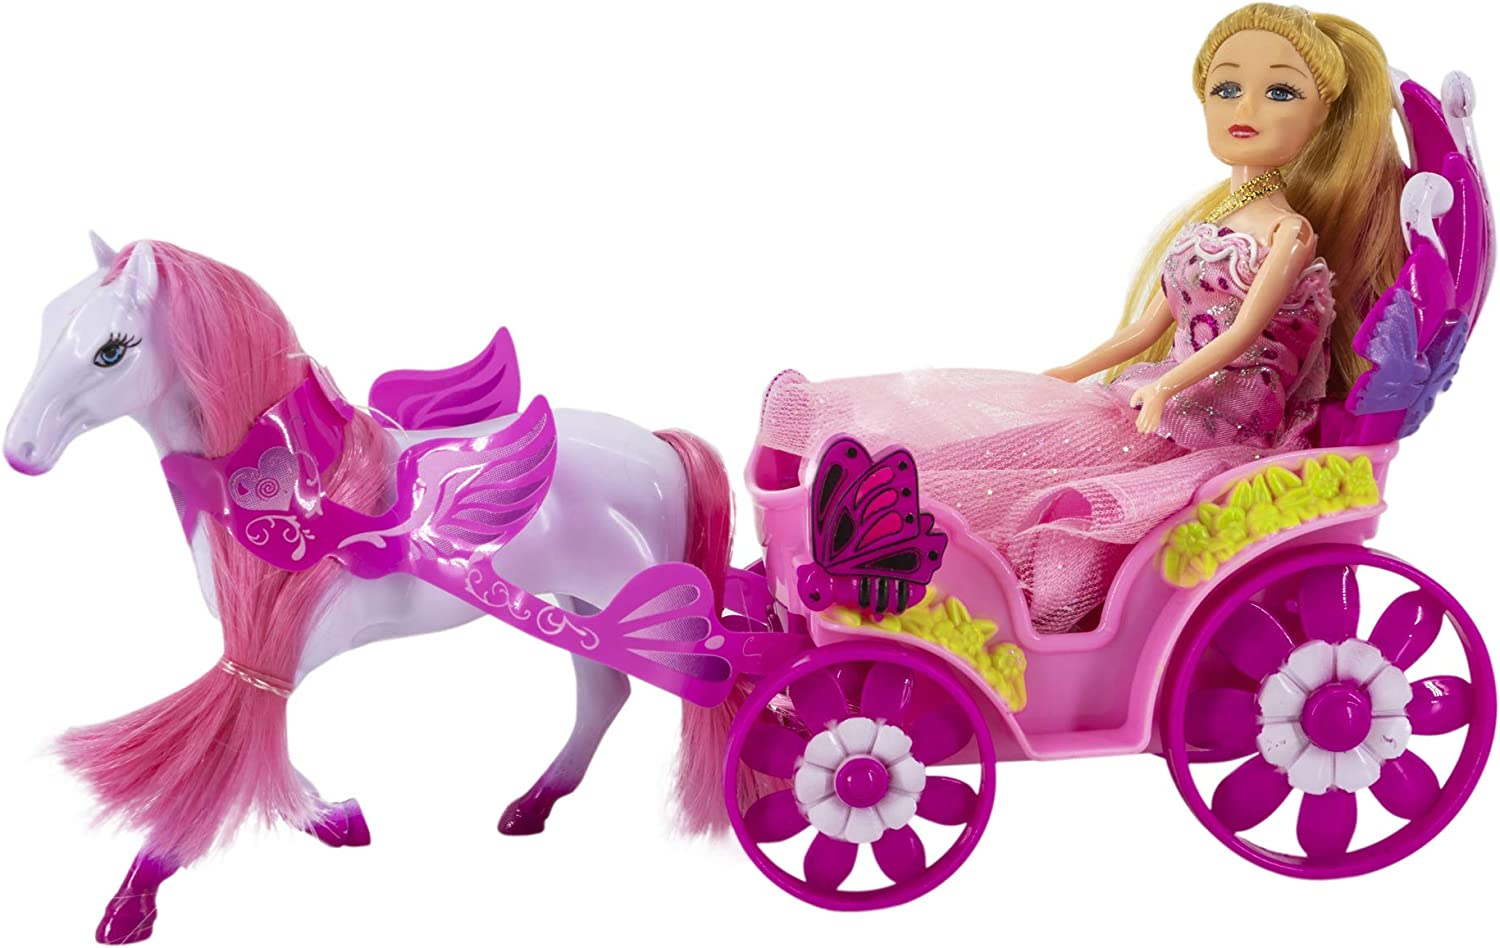 Toys Outlet - My Little Carriage 5406332548. Carroza con muñeca.